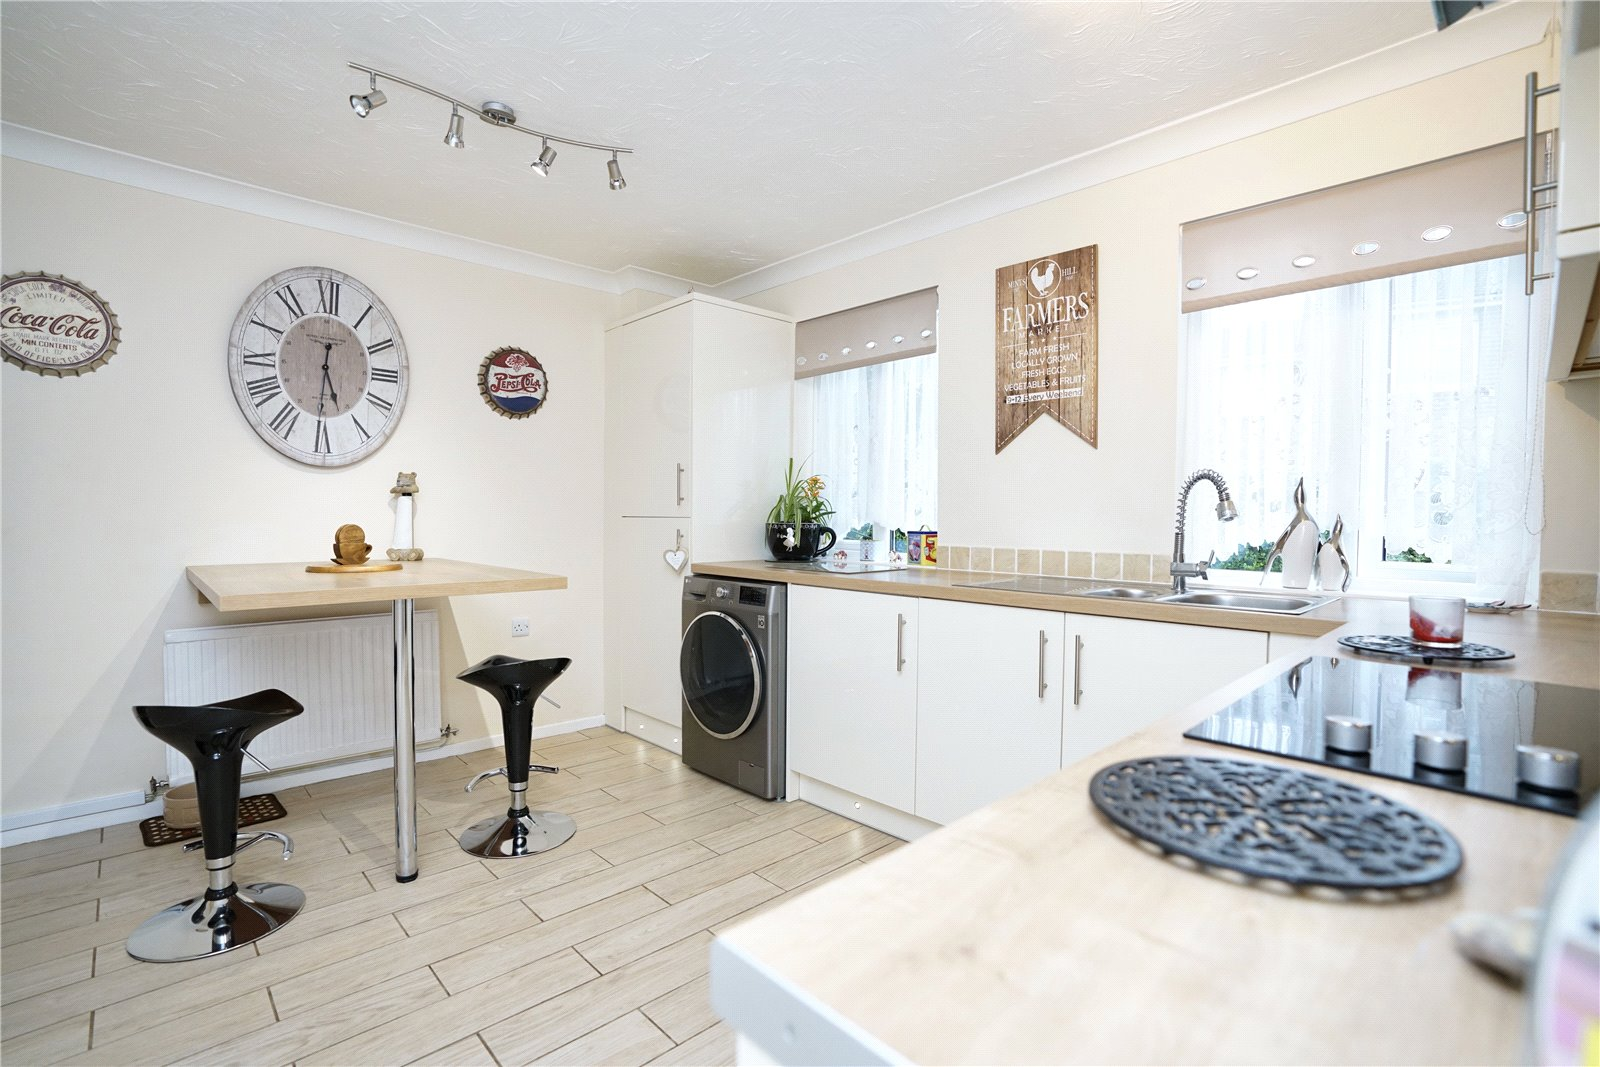 3 bed house for sale in Countess Close, Eaton Socon  - Property Image 1